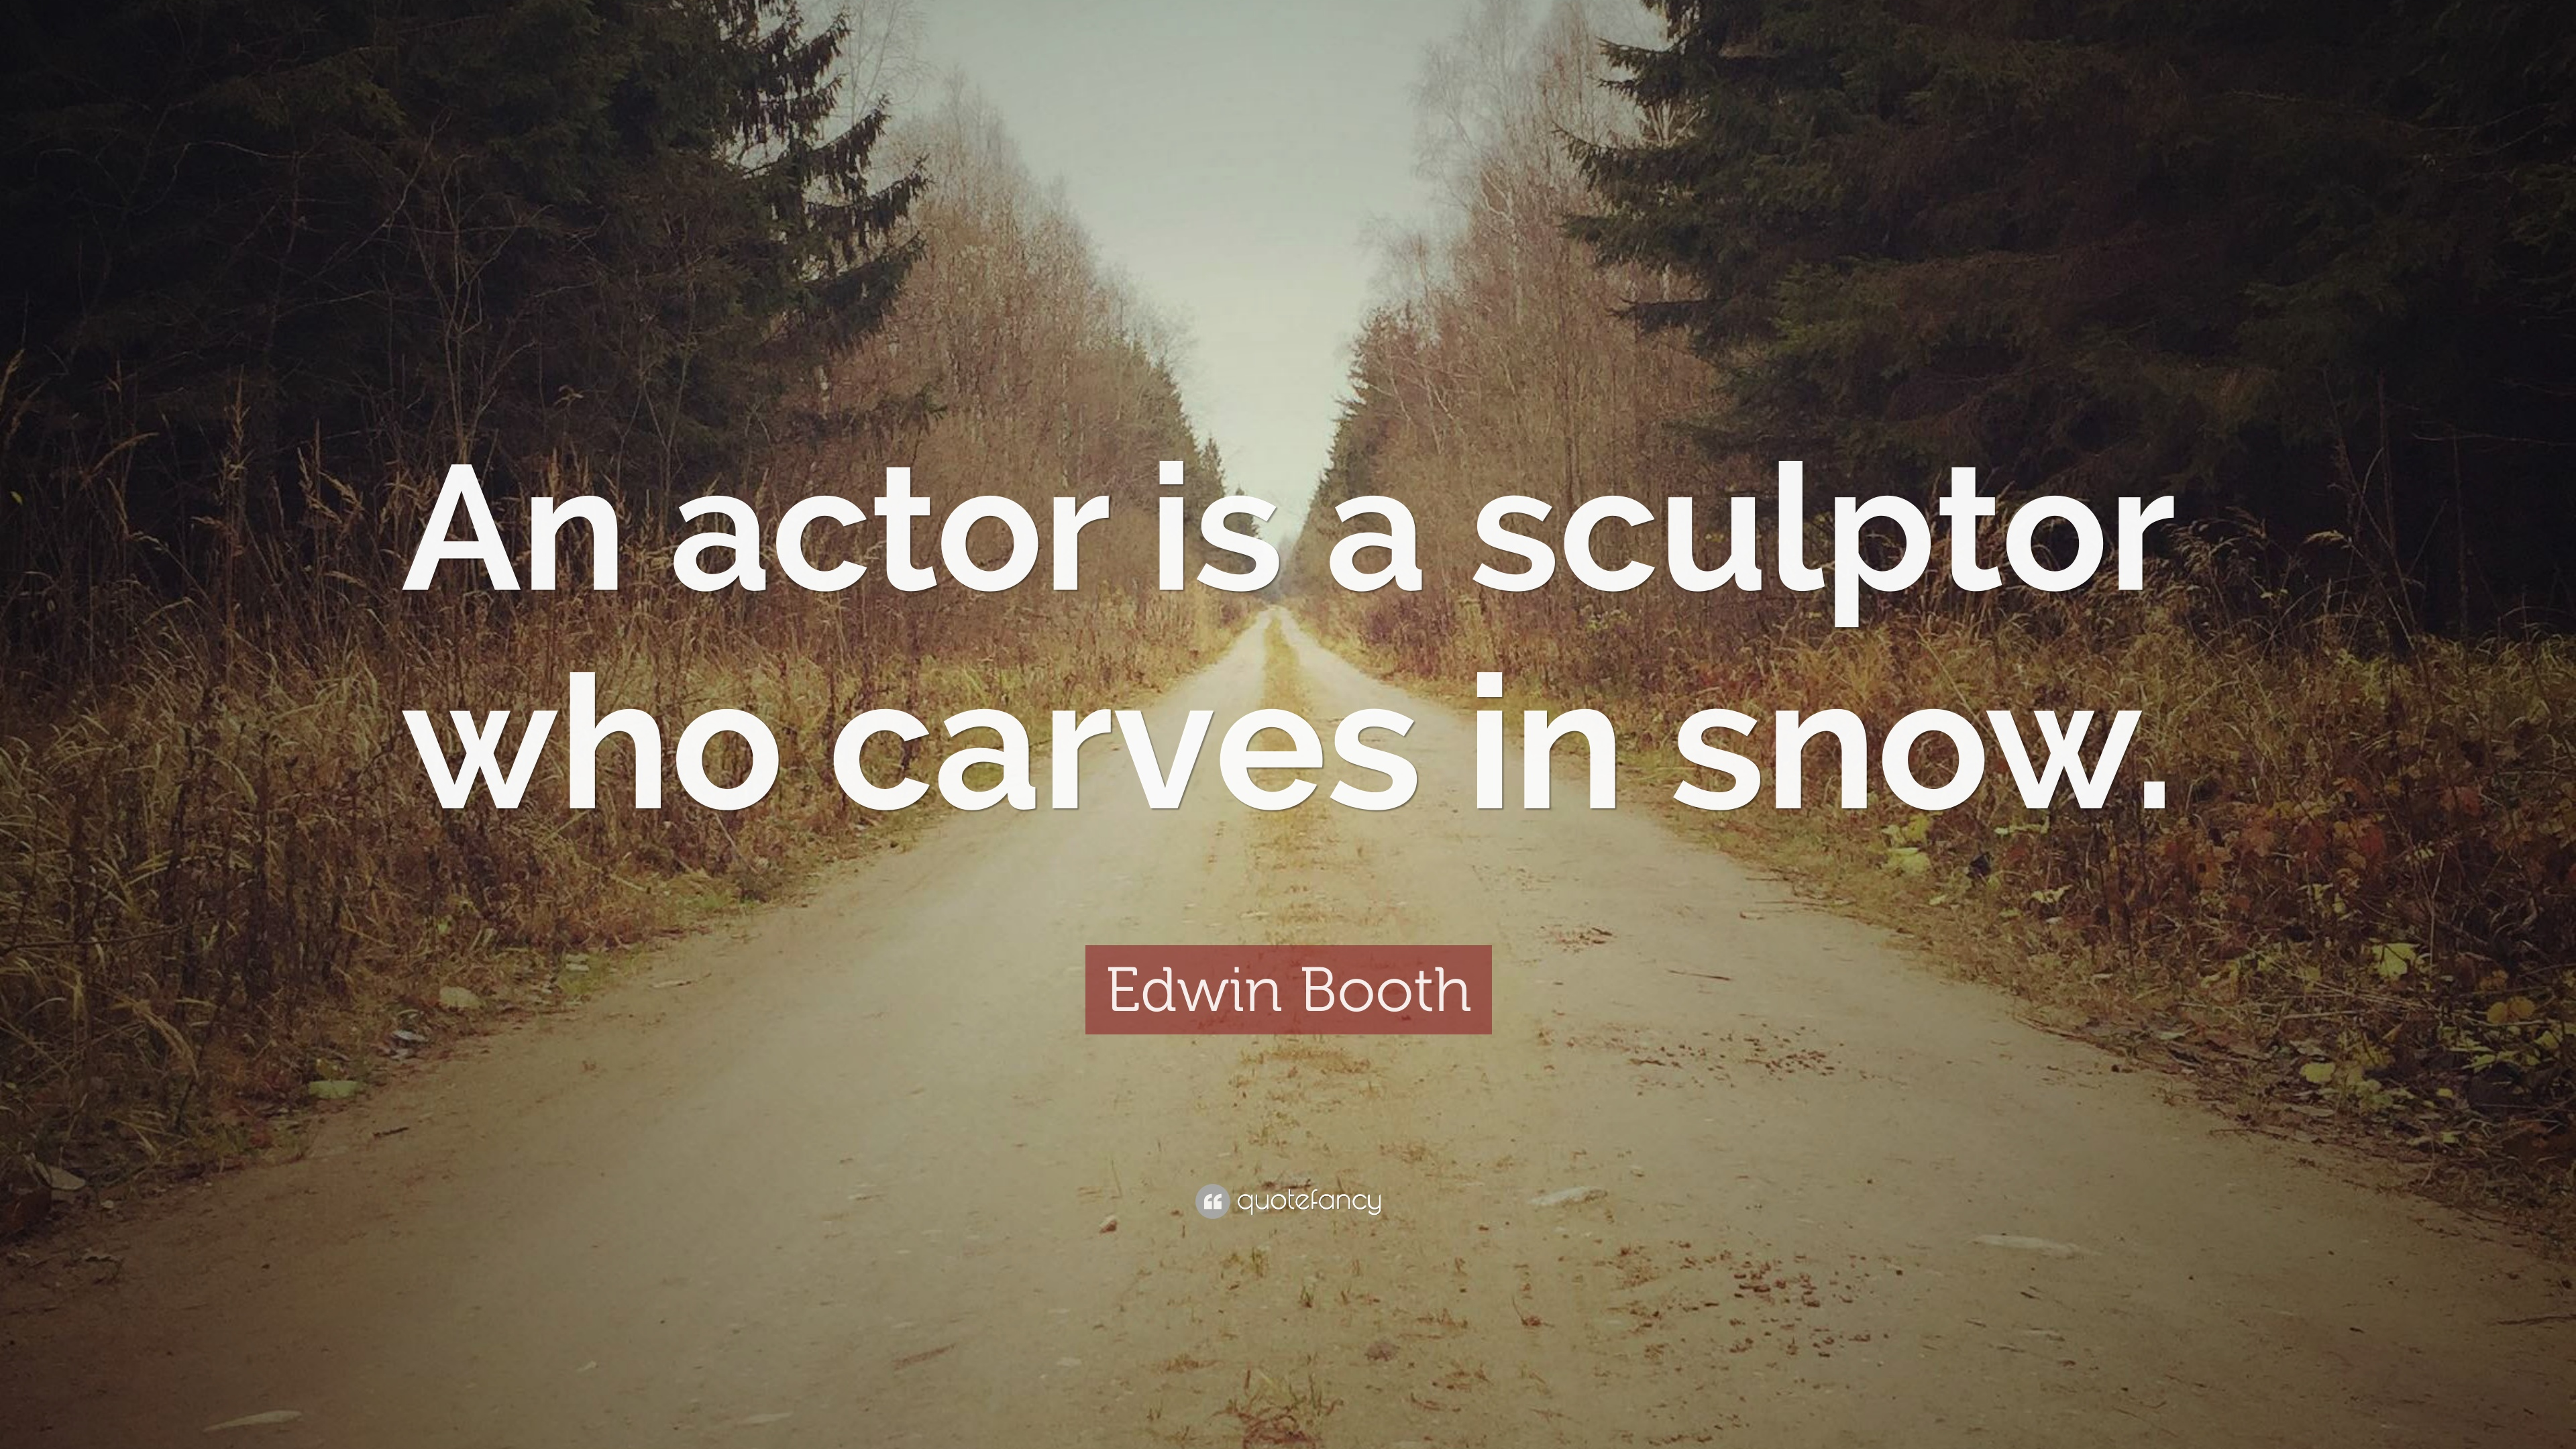 Photo Booth Quotes Edwin Booth Quotes 4 Wallpapers  Quotefancy